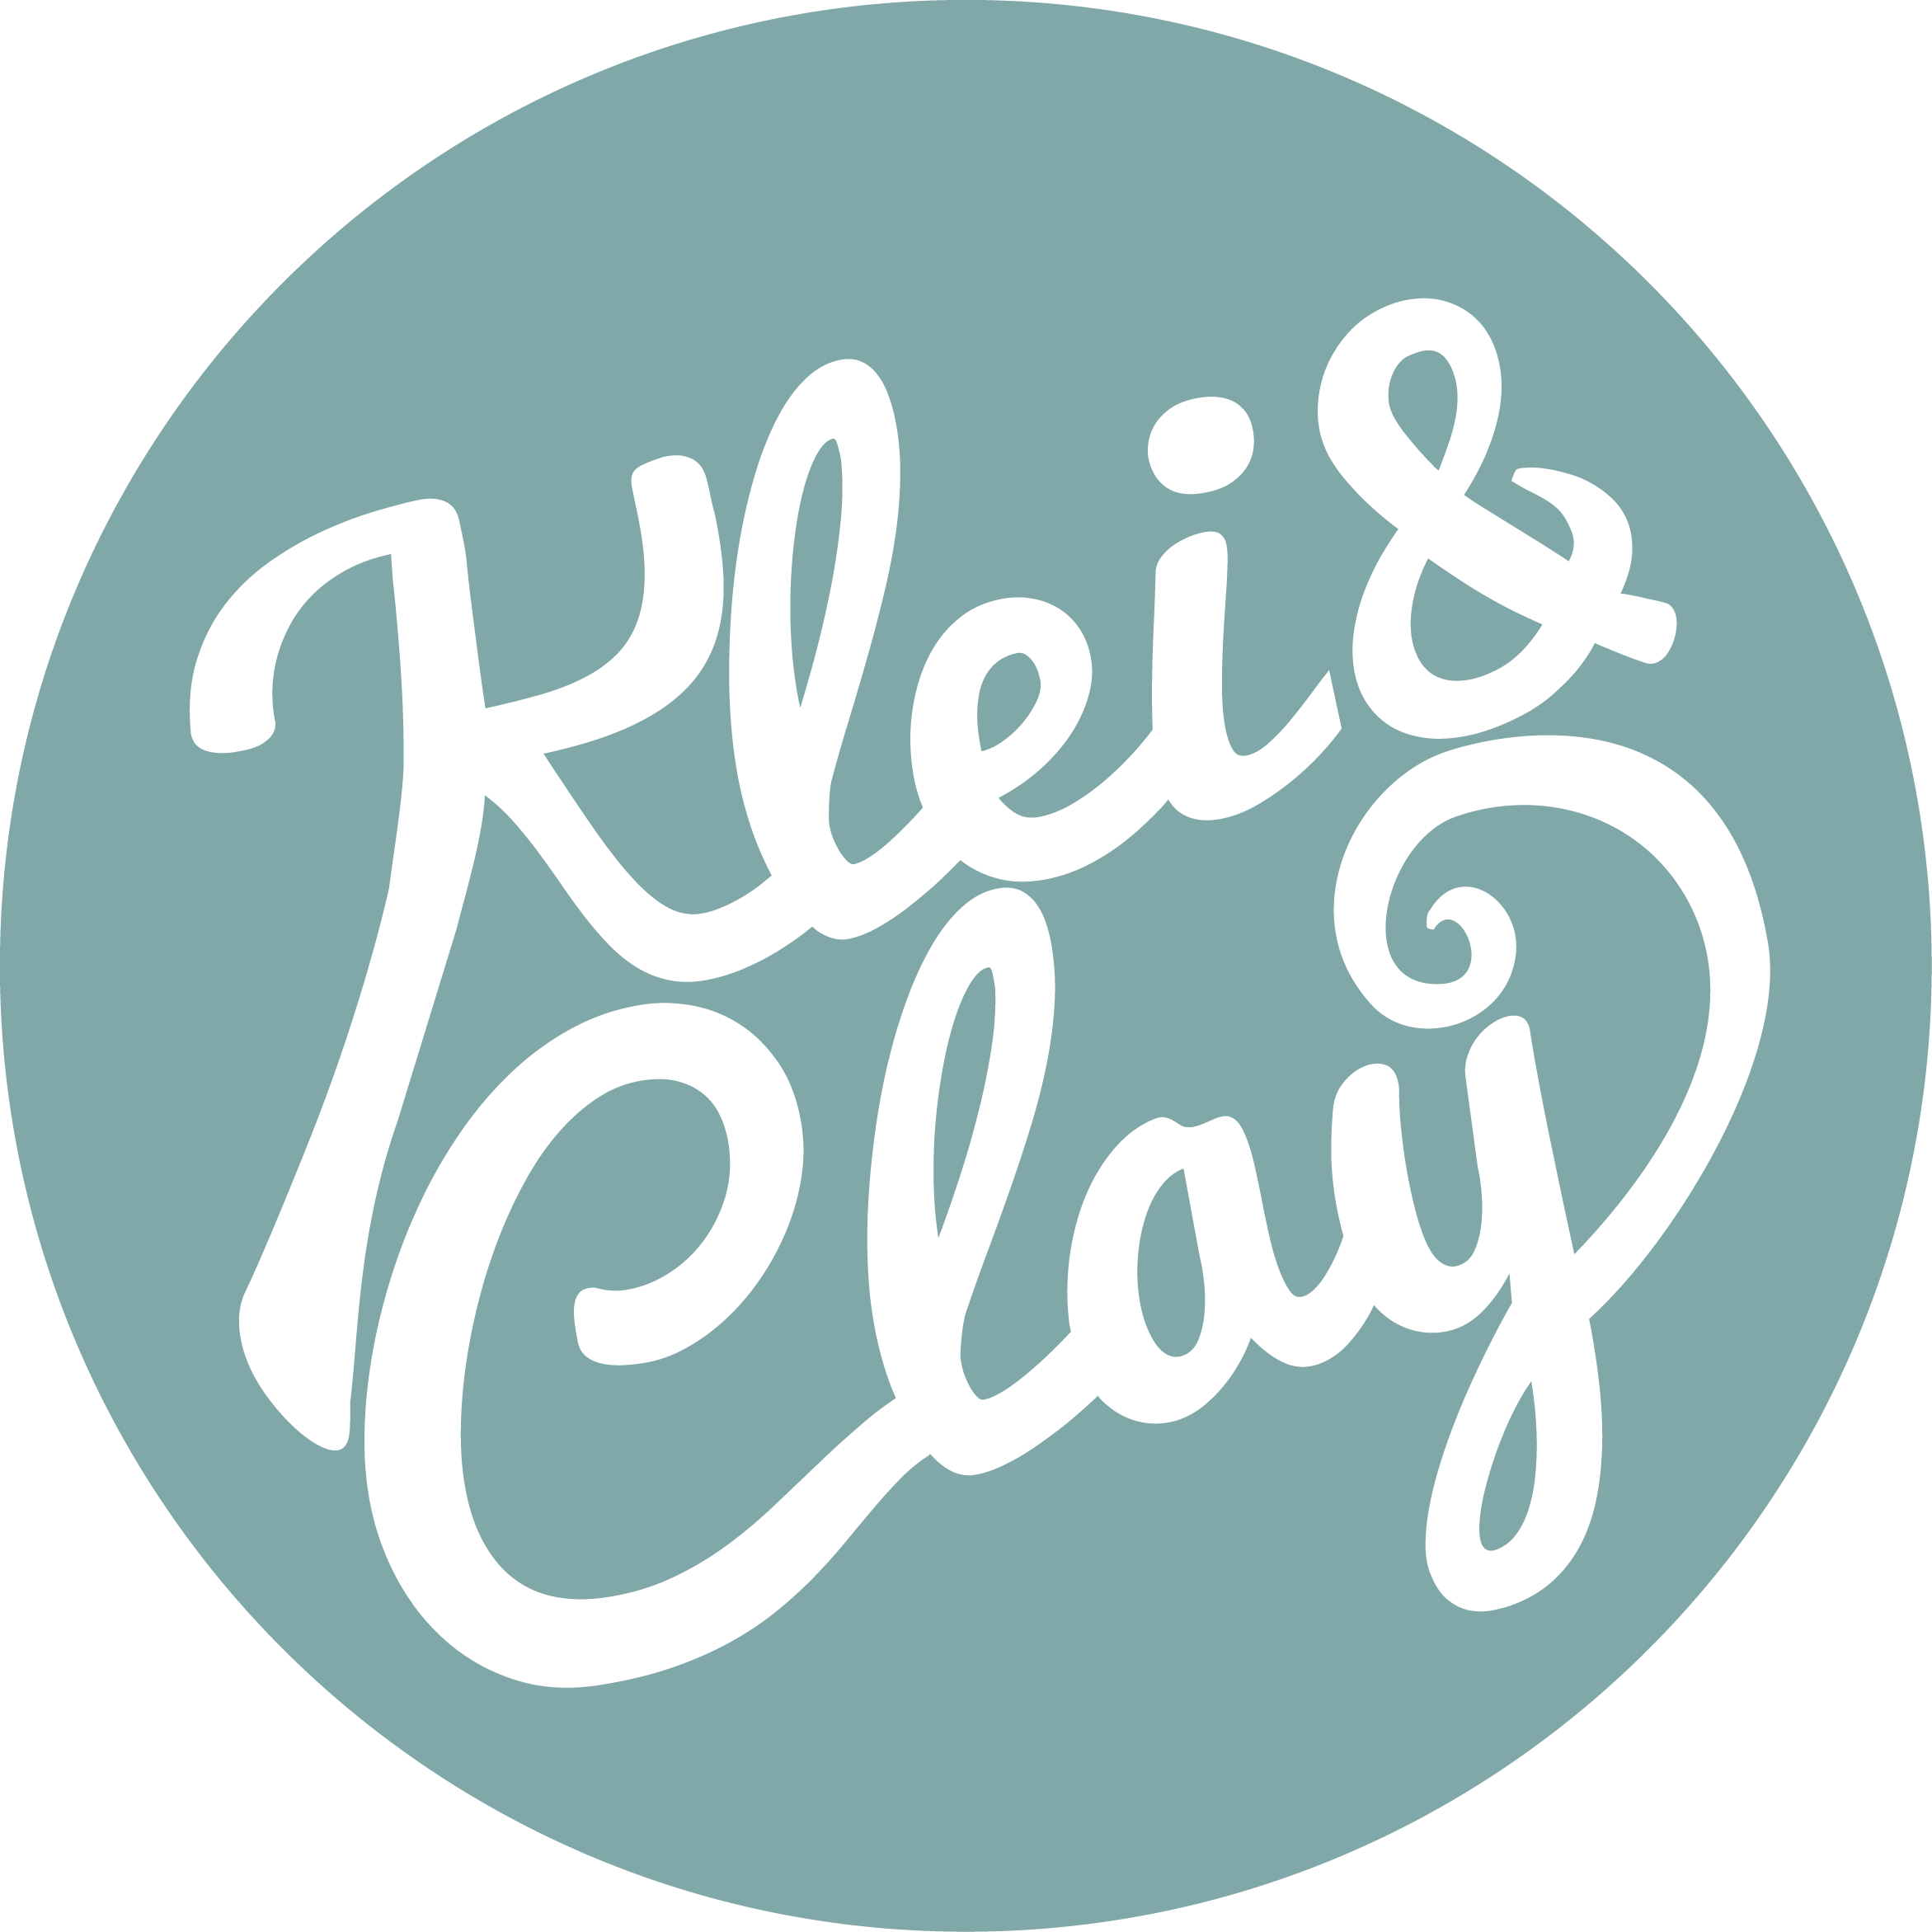 Klei and Clay